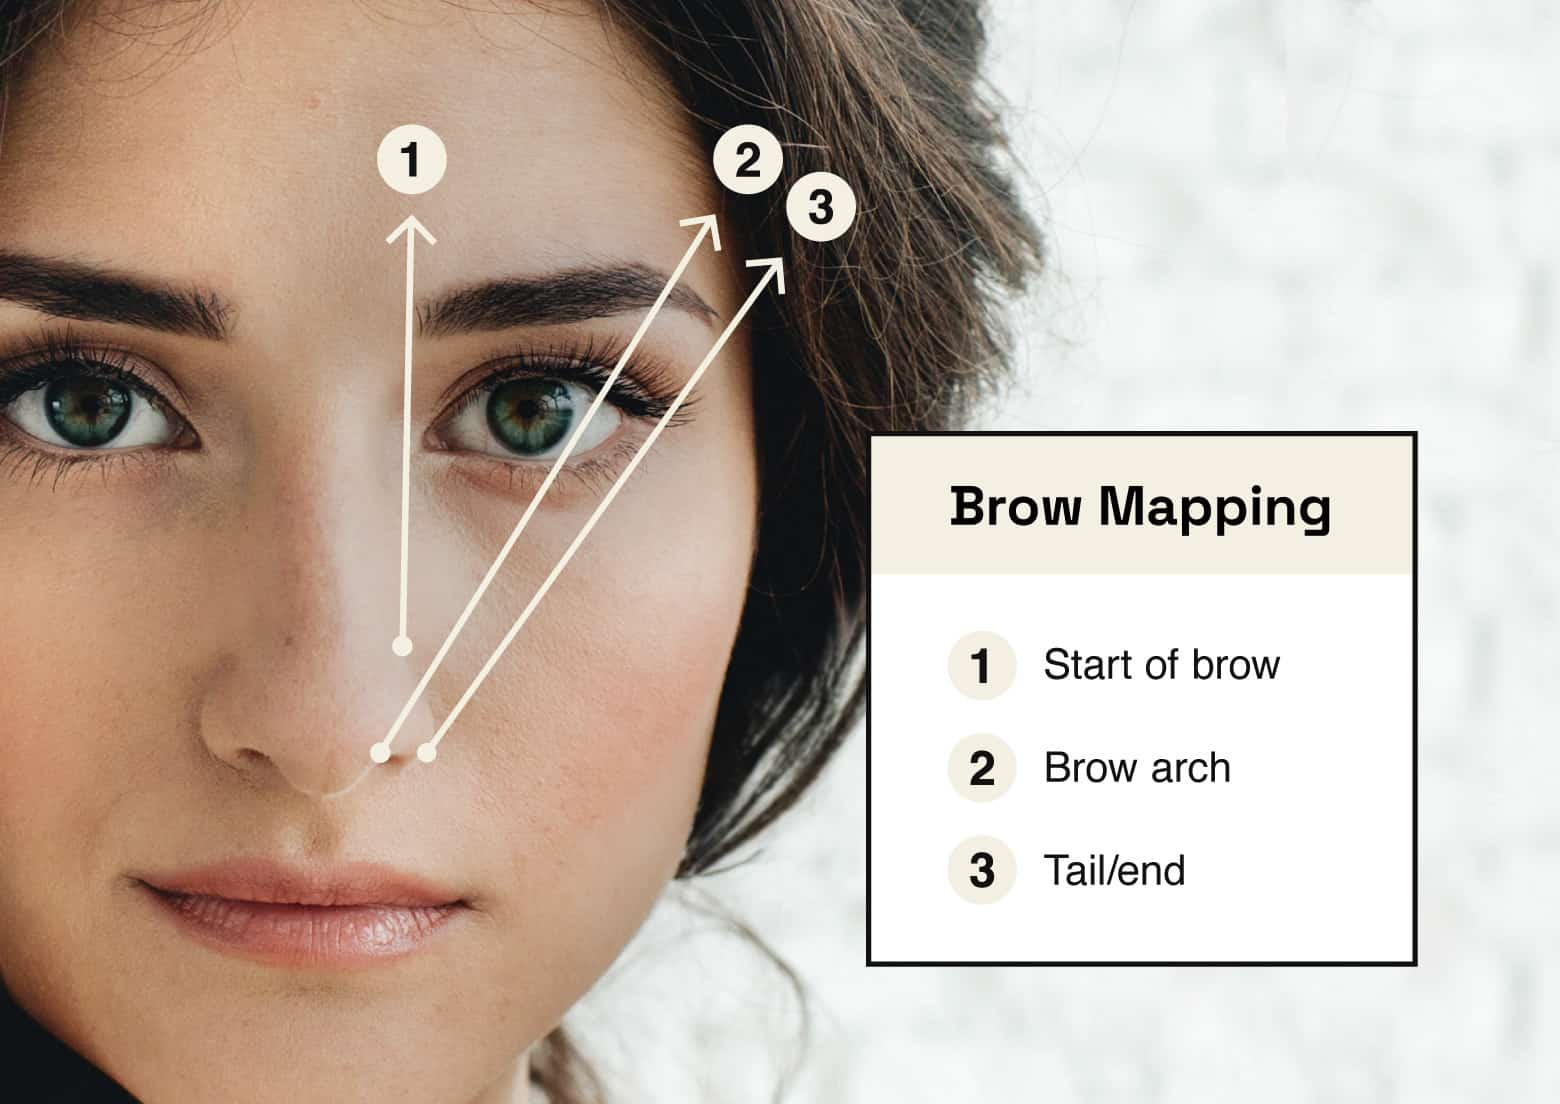 brow mapping guide